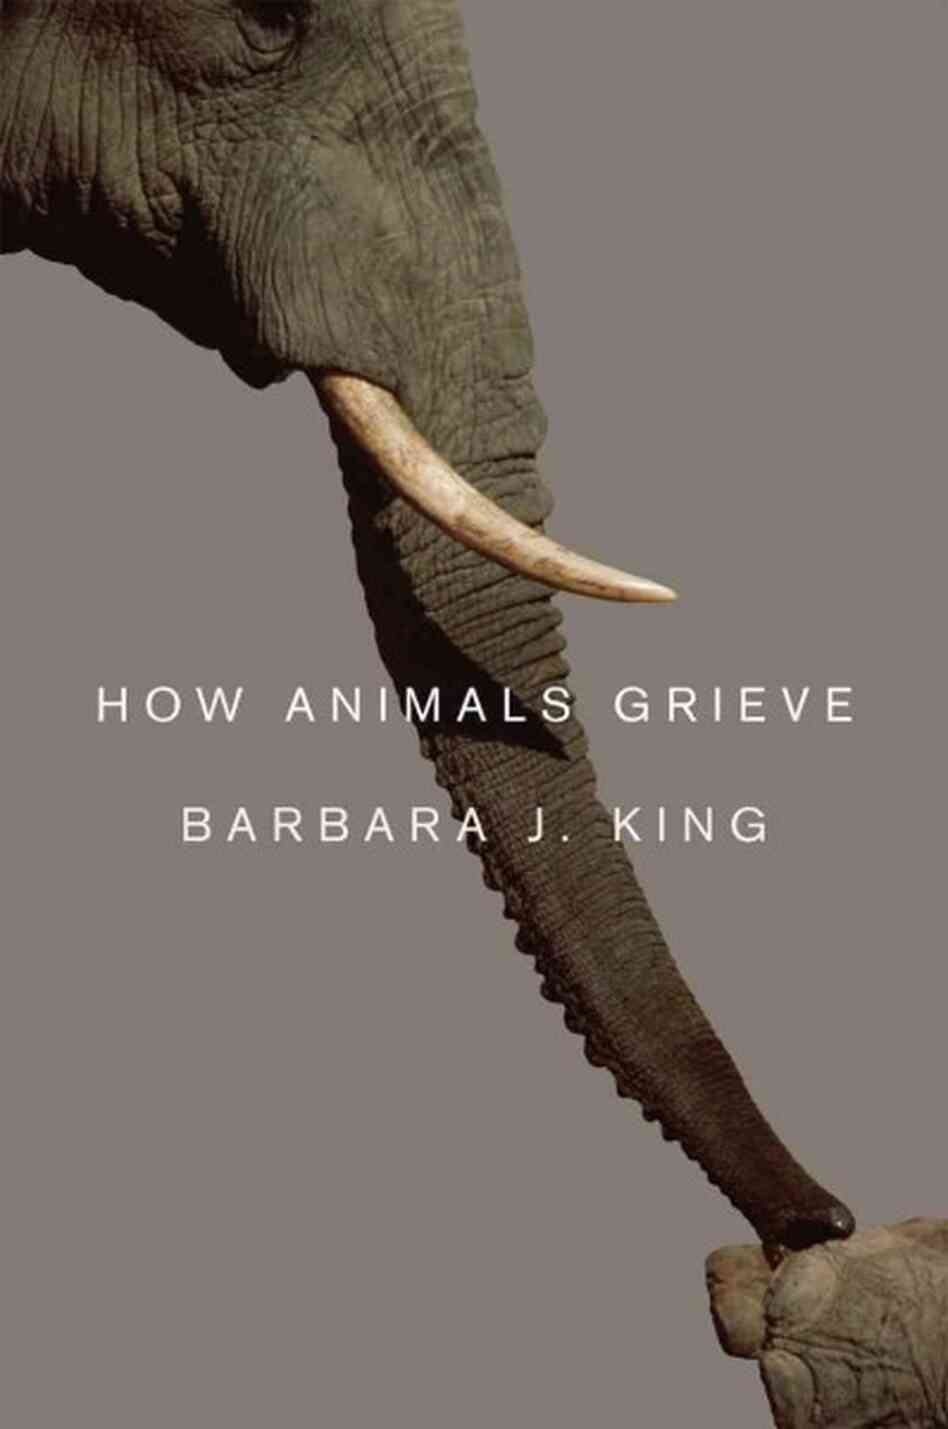 Questions For Barbara King, Author Of 'How Animals Grieve'